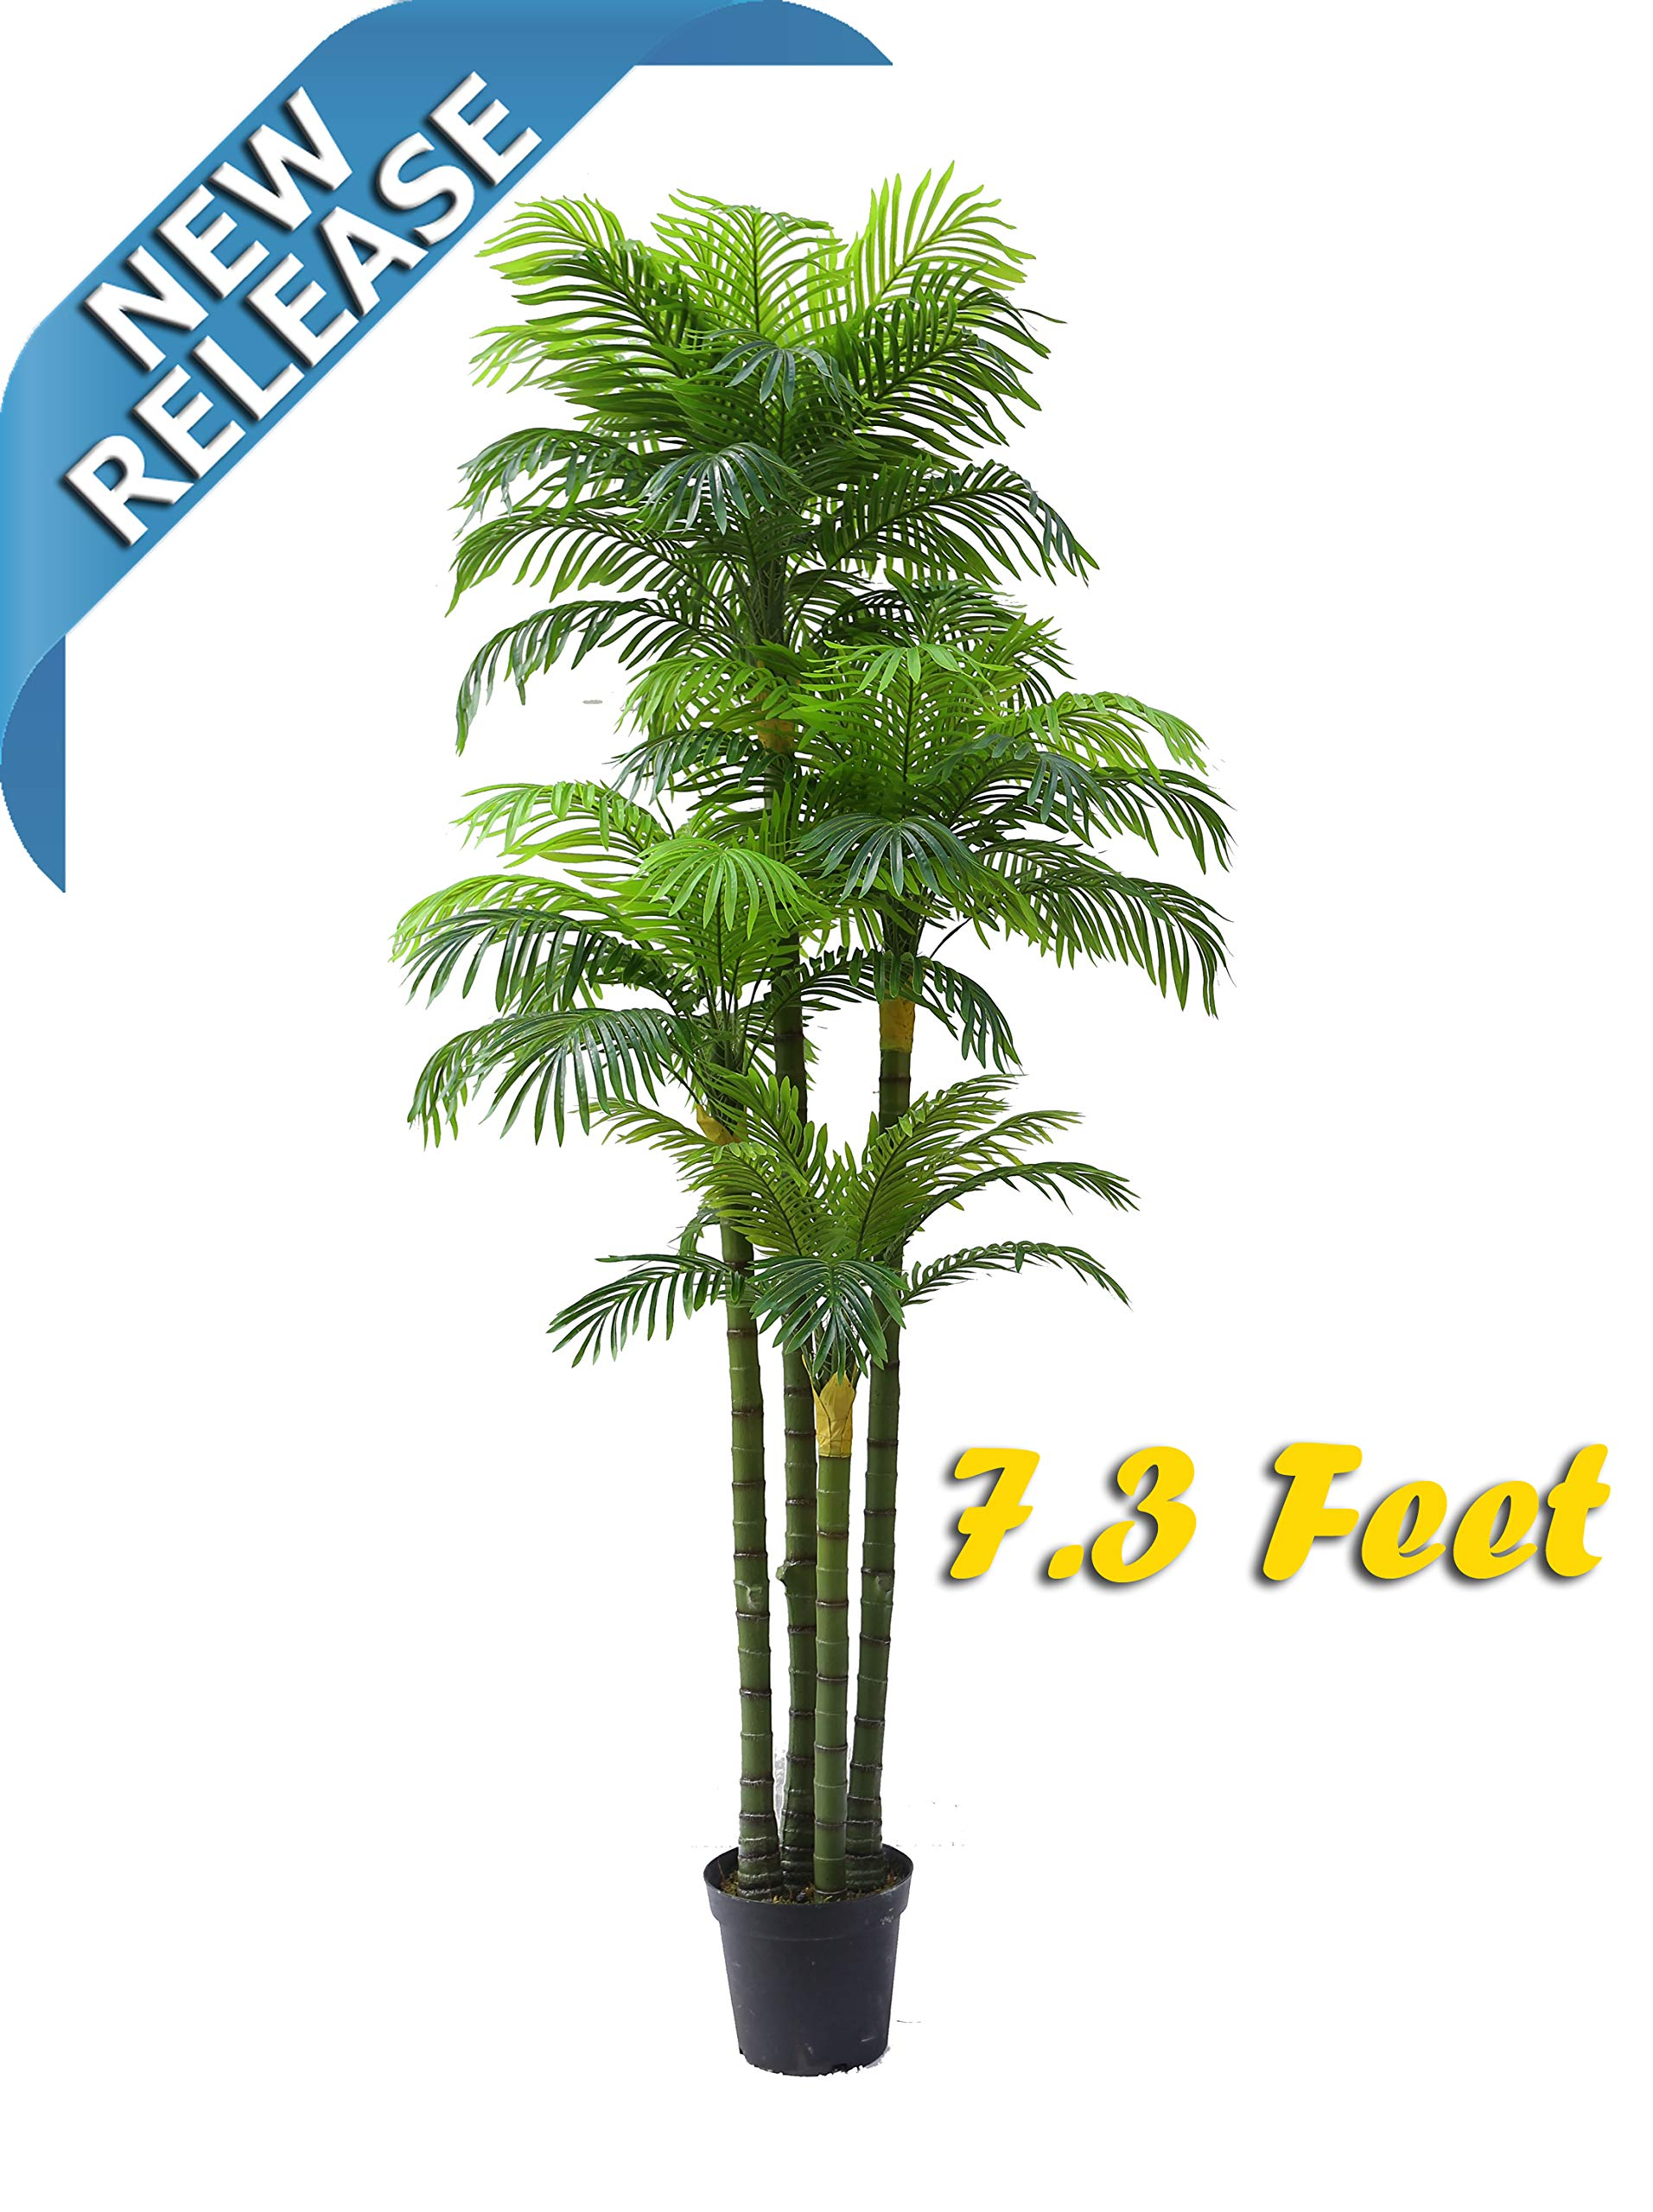 AMERIQUE Massive and Dense Exotic 7.3' Tropical Phoenix Palm Tree Artificial Silk Plant with UV Protection, with Nursery Plastic Pot, Feel Real Technology, Super Quality, Feet, Green by AMERIQUE